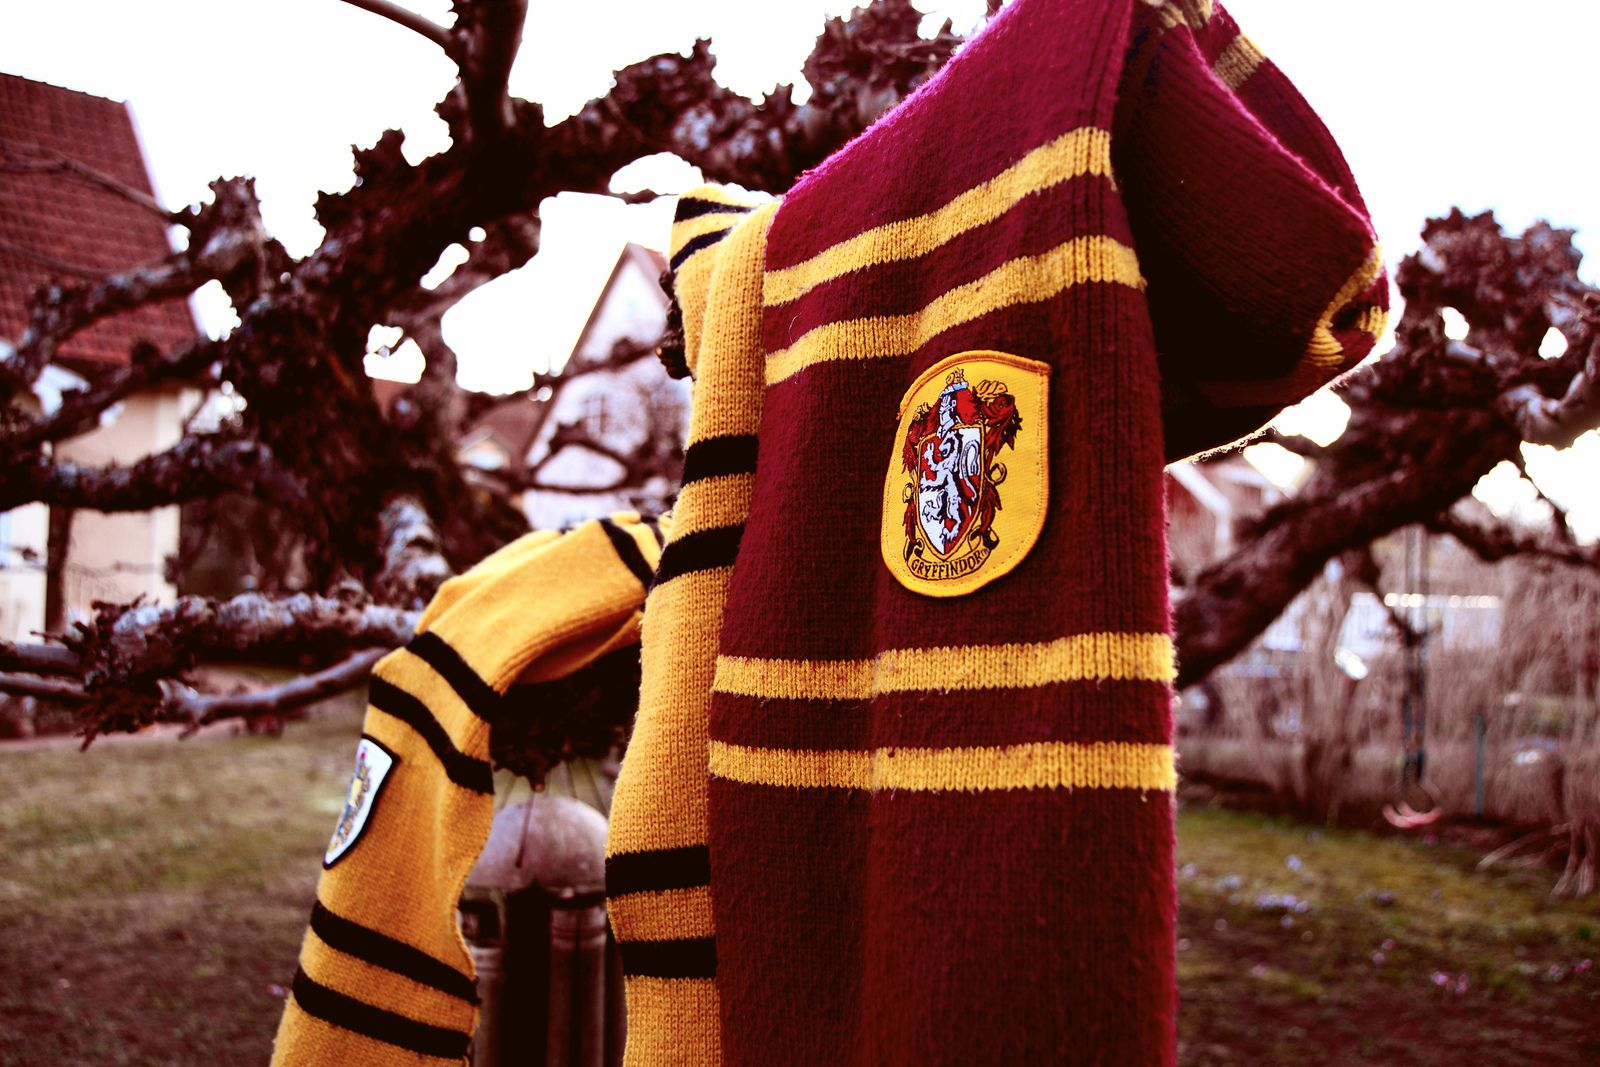 Gryffindor and Hufflepuff scarves